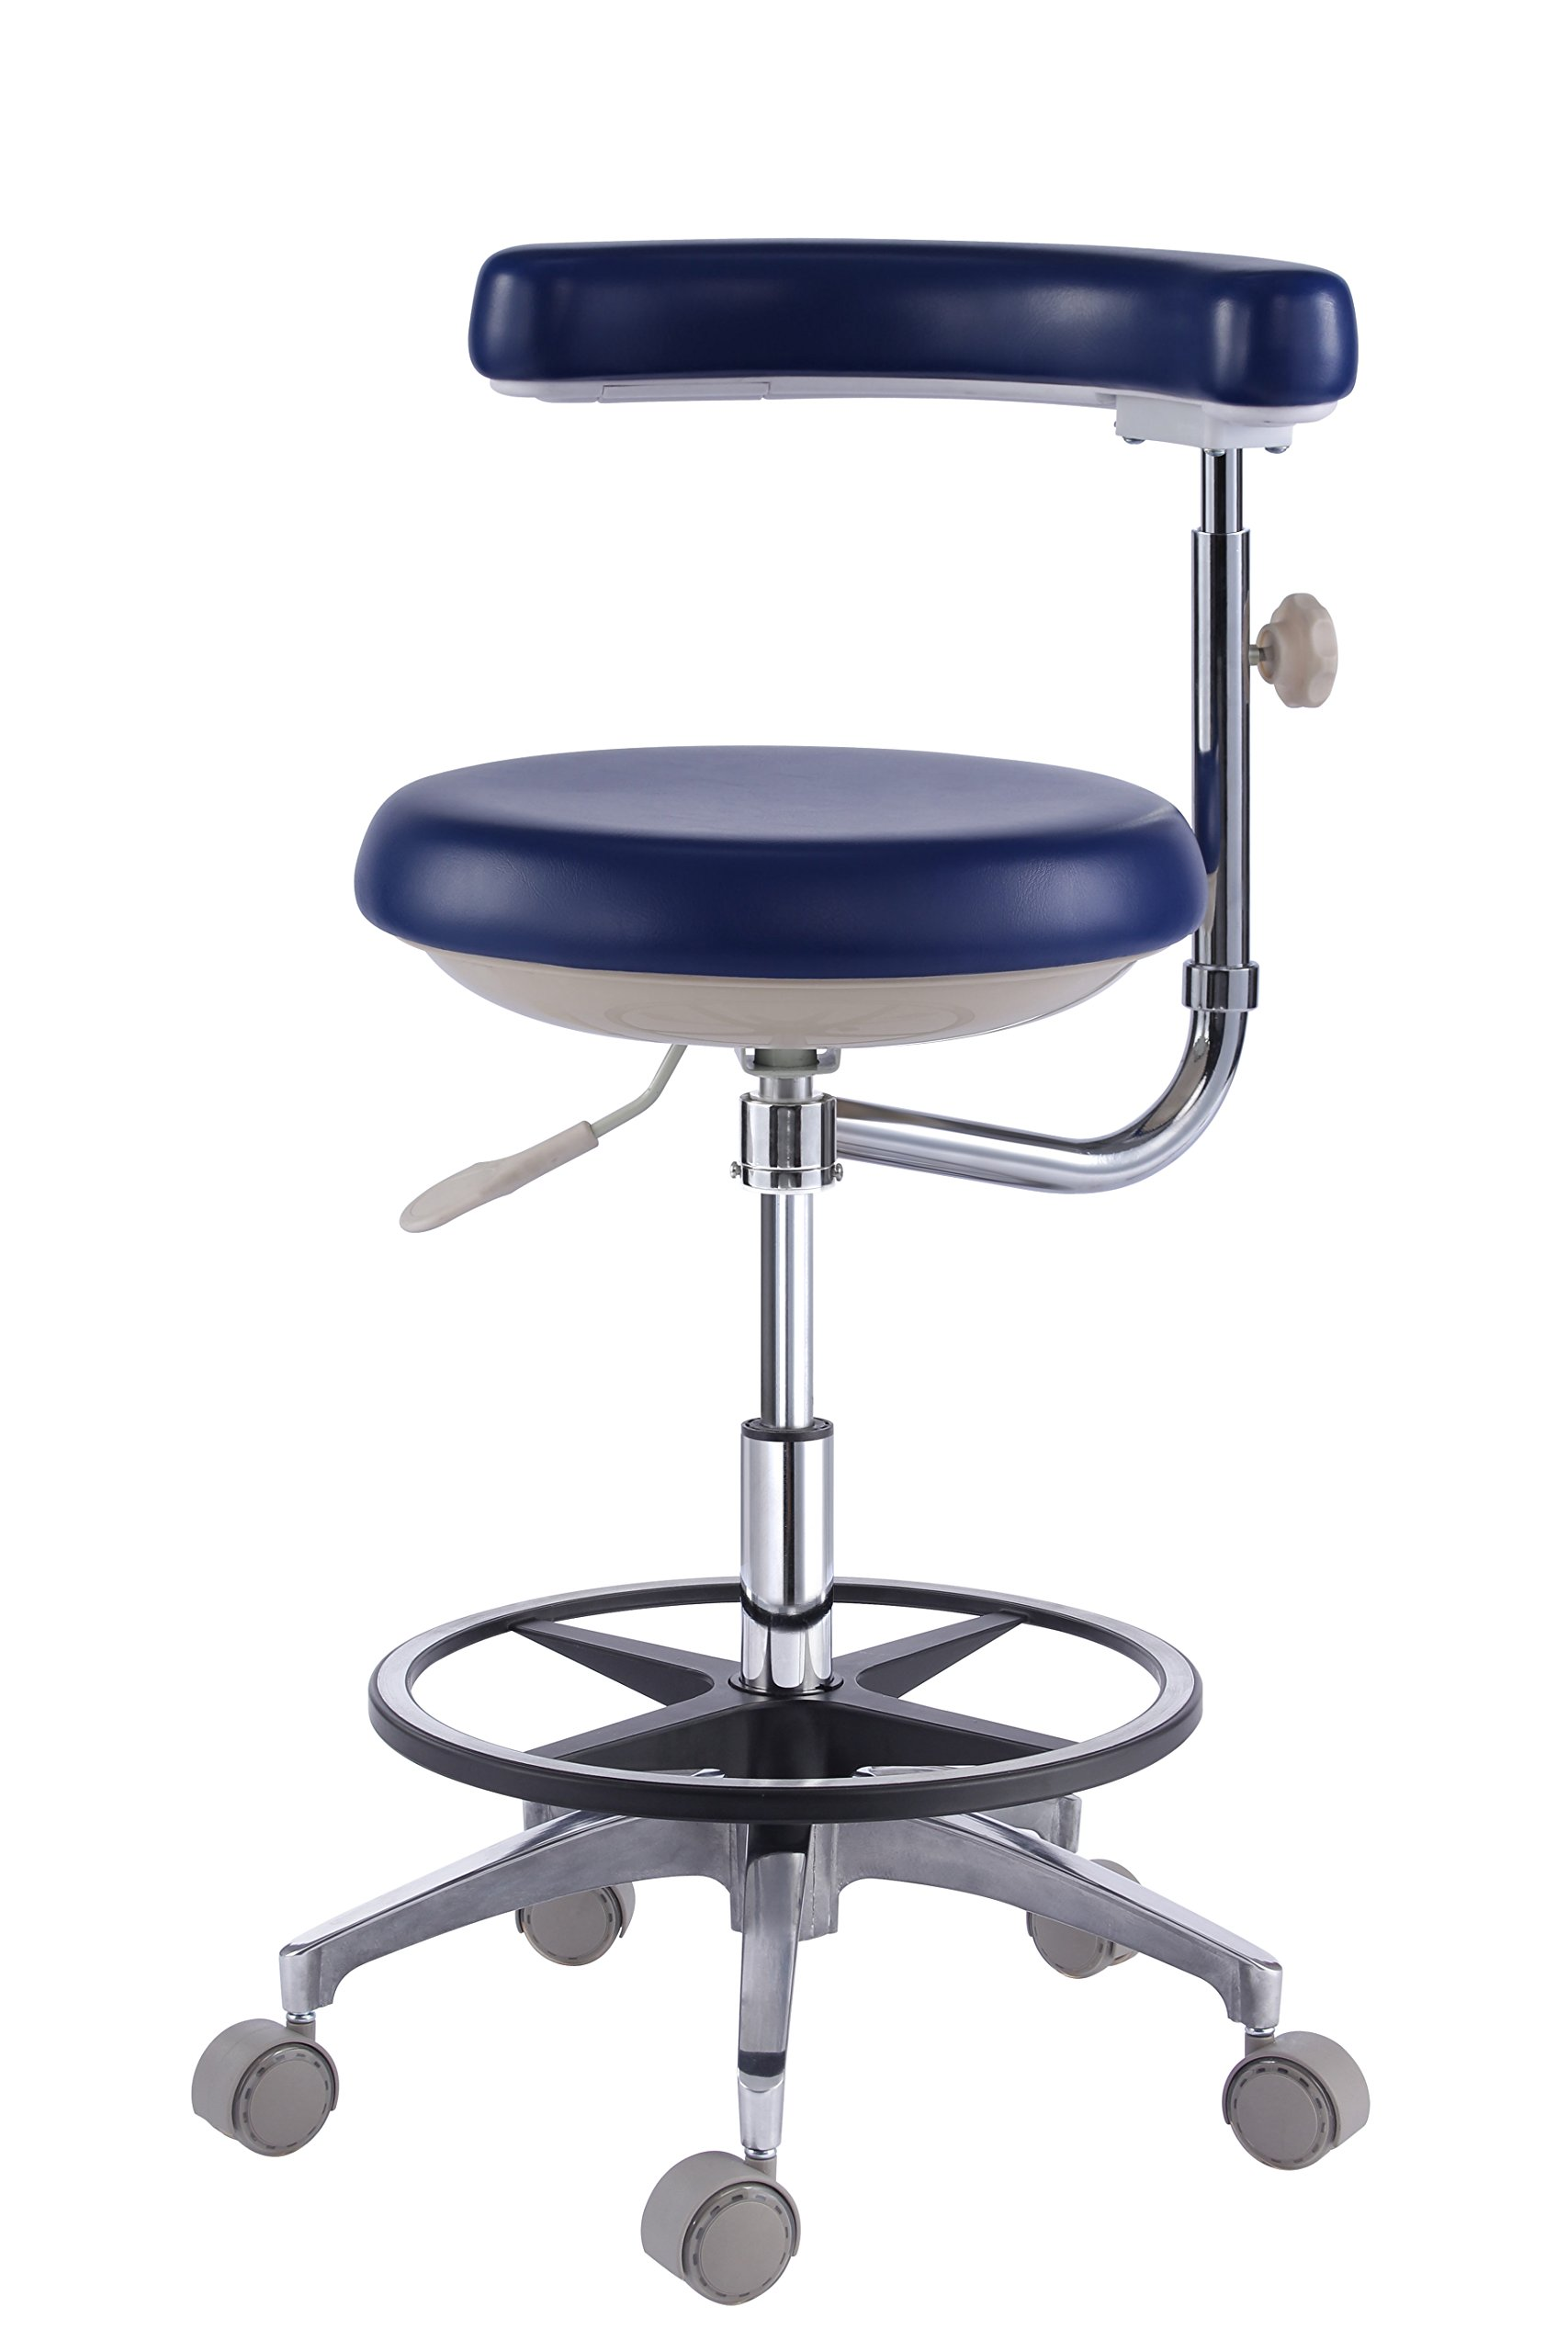 Zeta Dental Dentist's Mobile Chair Nurse's Stools with Backrest PU Leather Light Blue (1#)